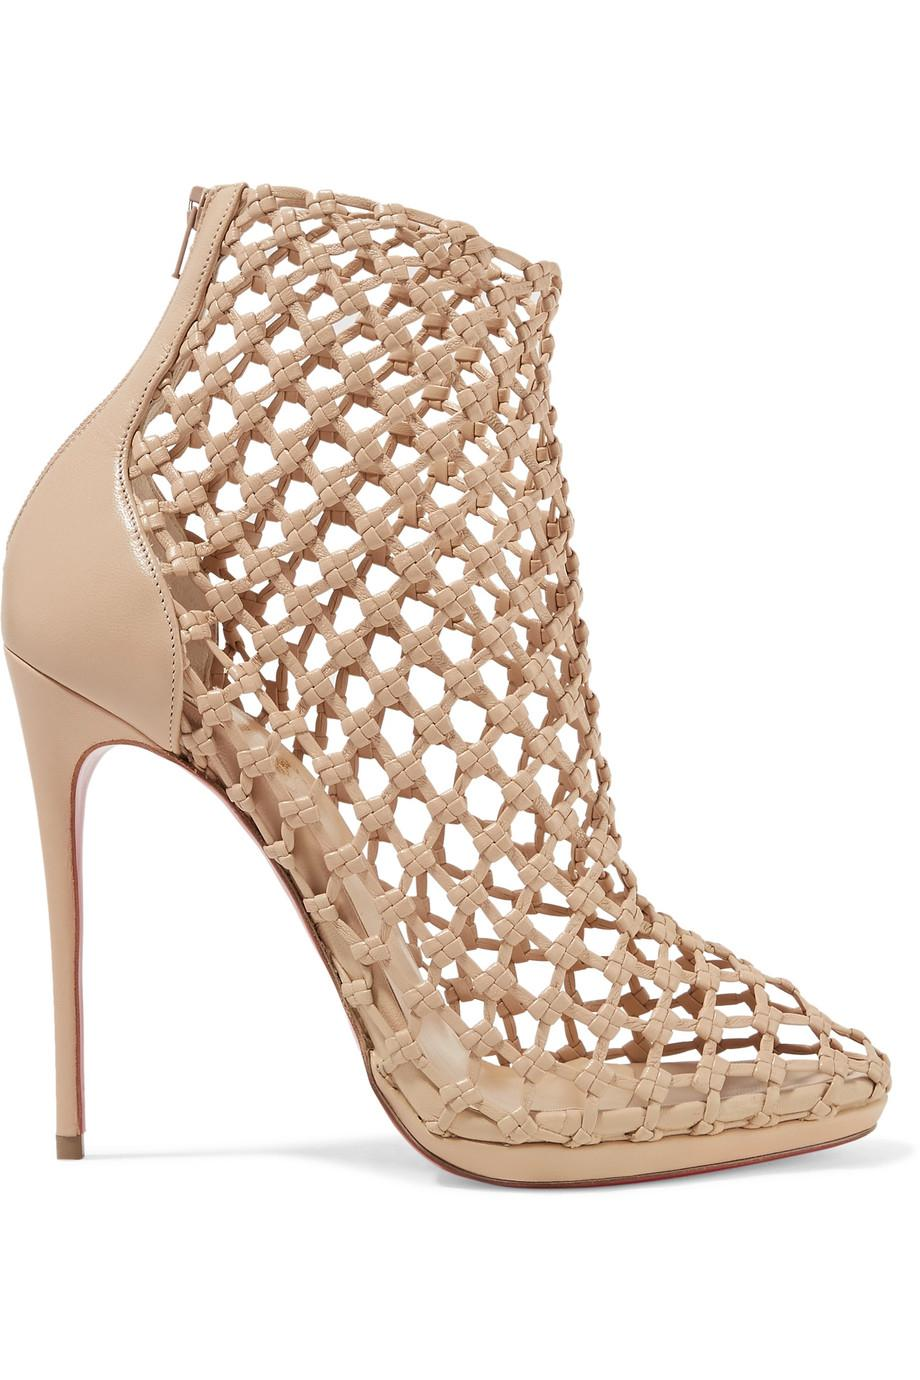 Porligat 120 beige leather booties Christian Louboutin z2epZM9vrs